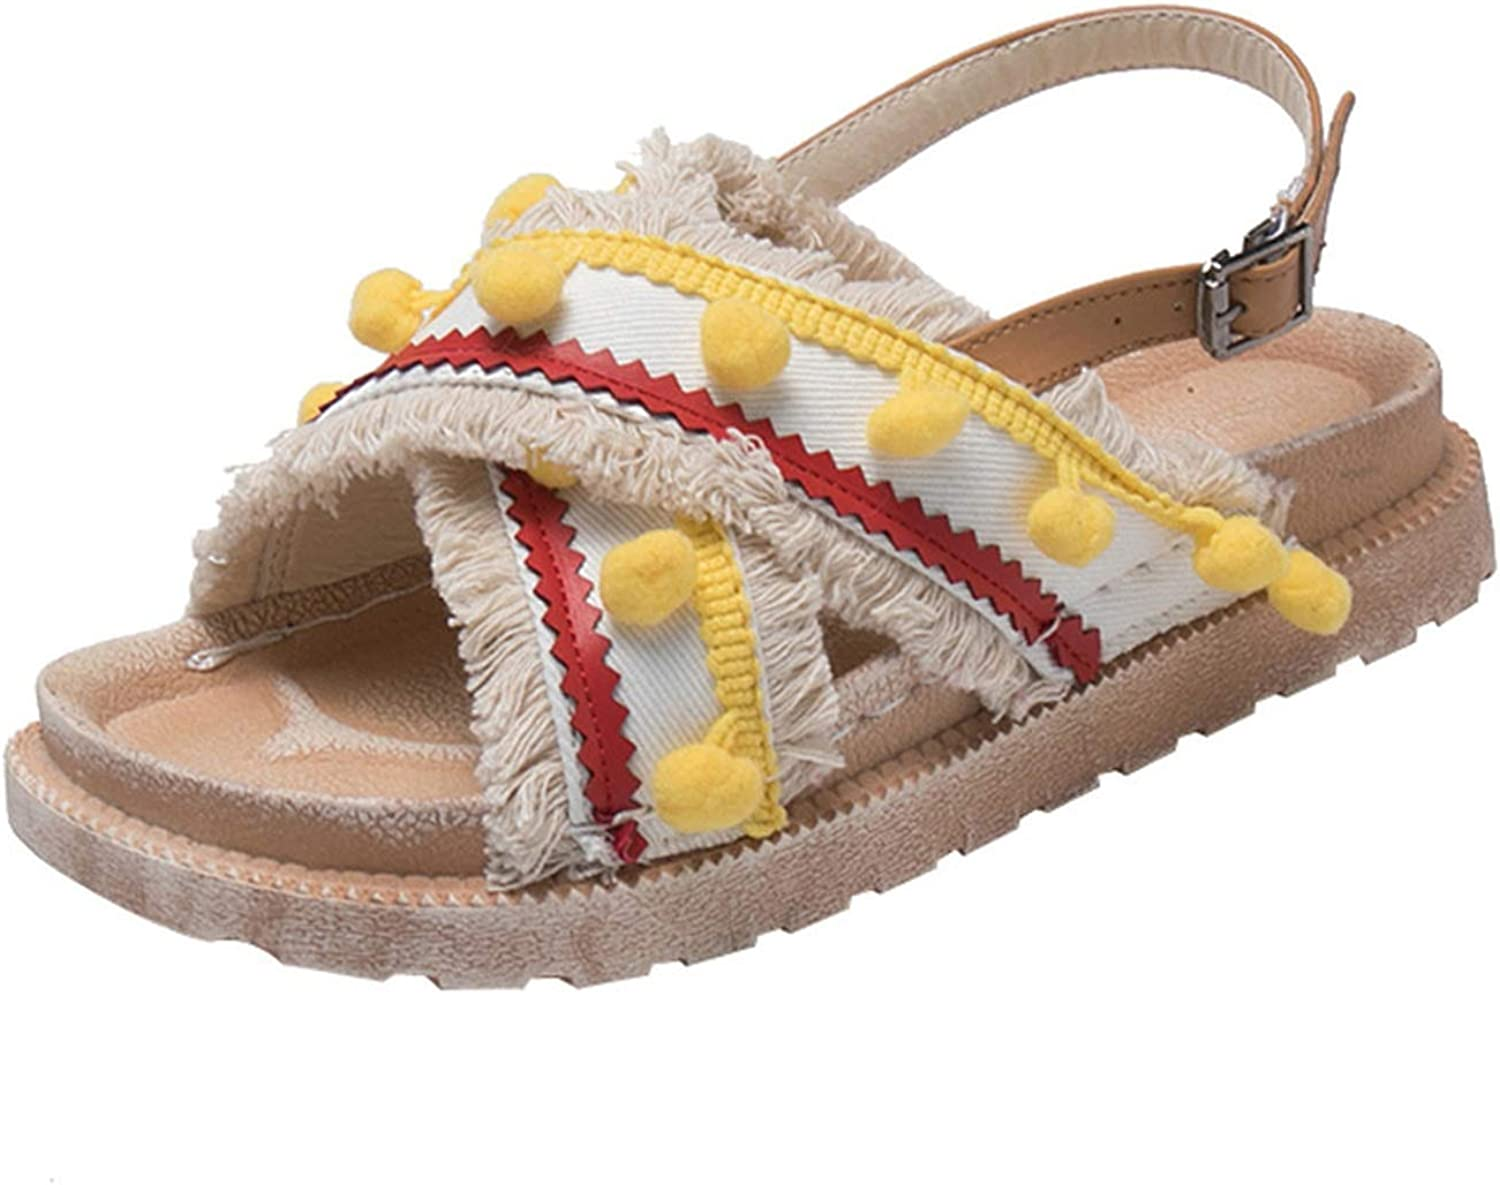 shoes Ladies Ethnic Bohemia Summer Roman Strappy Embroidered Tassel Flats Buckle Sandals